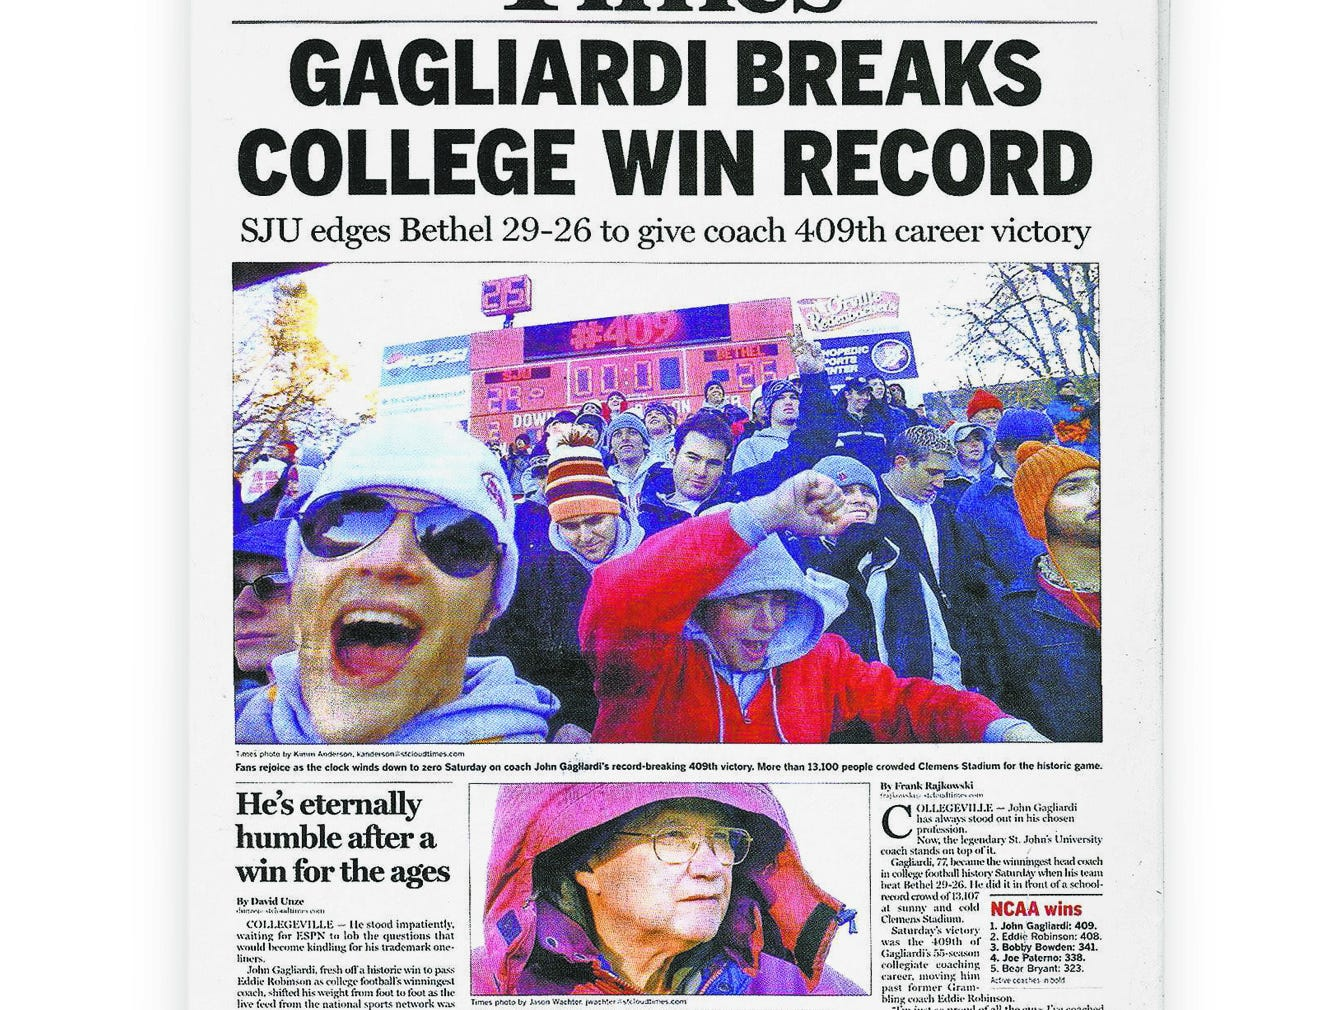 The St. Cloud Times on Nov. 9, 2003, commemorating John Gagliardi's record-setting 409th career win.